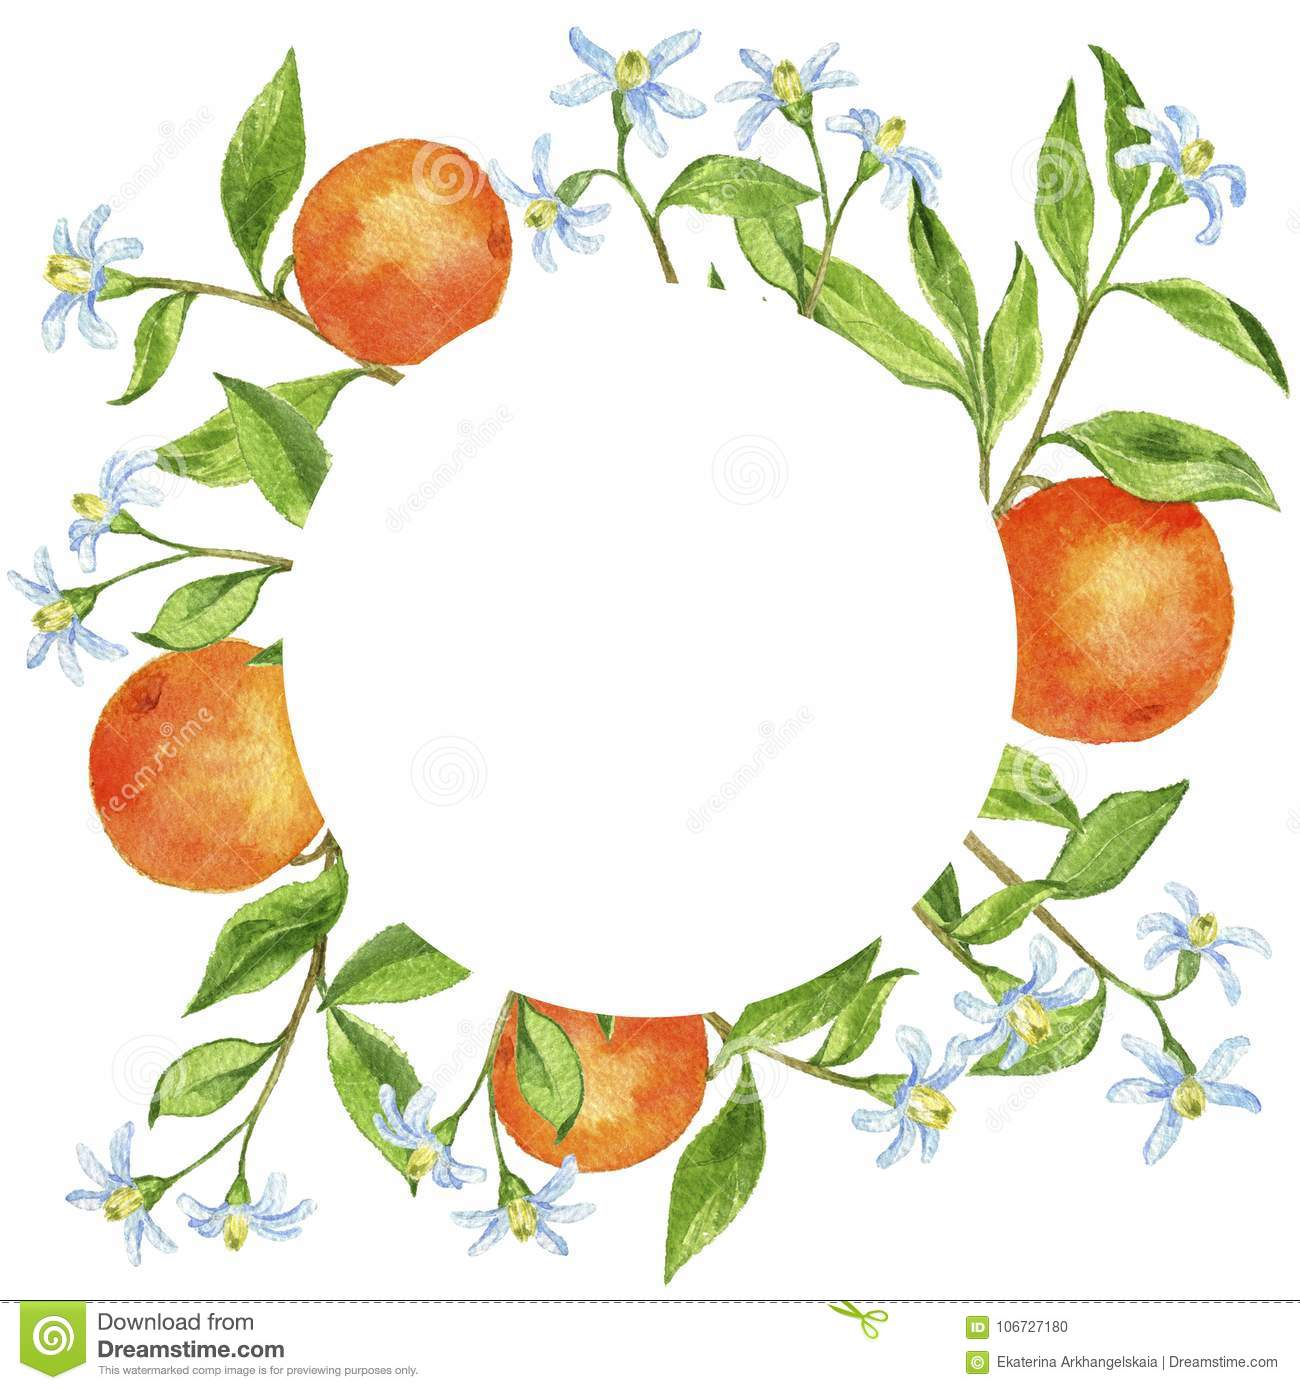 background with fruit tree branches flowers leaves and oranges